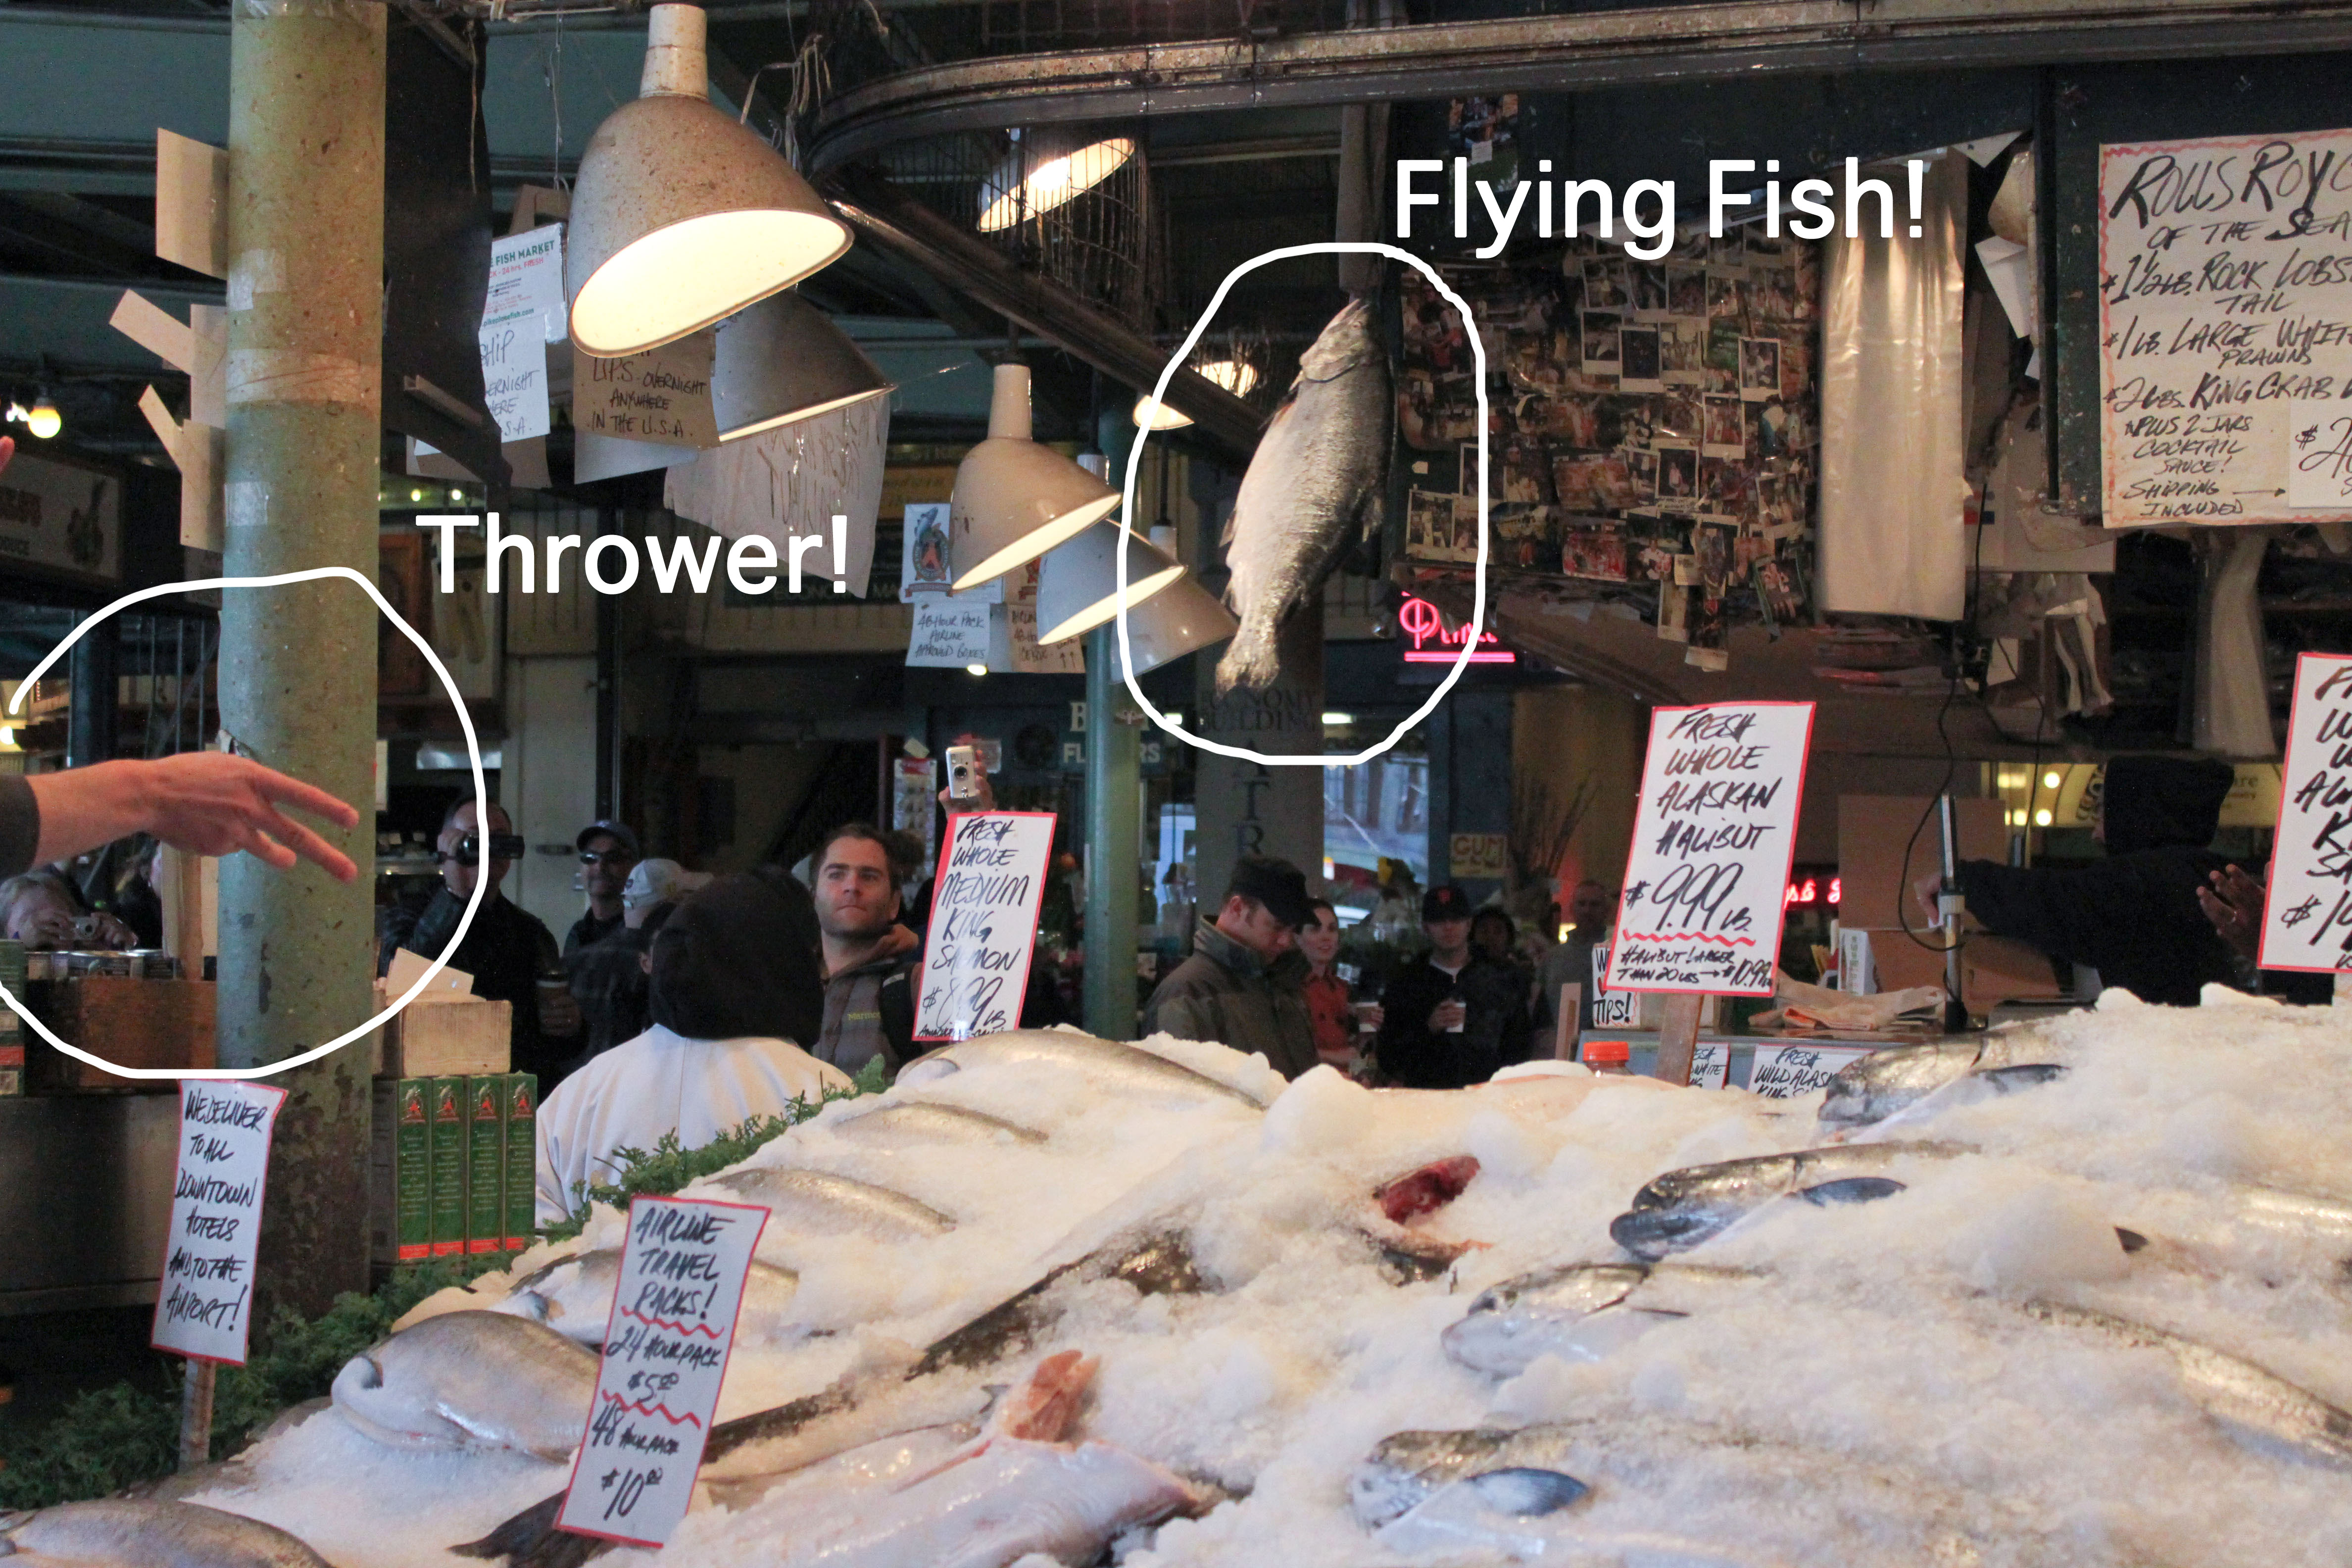 Pike place market seattle wa the pearl onion for Flying fish seattle